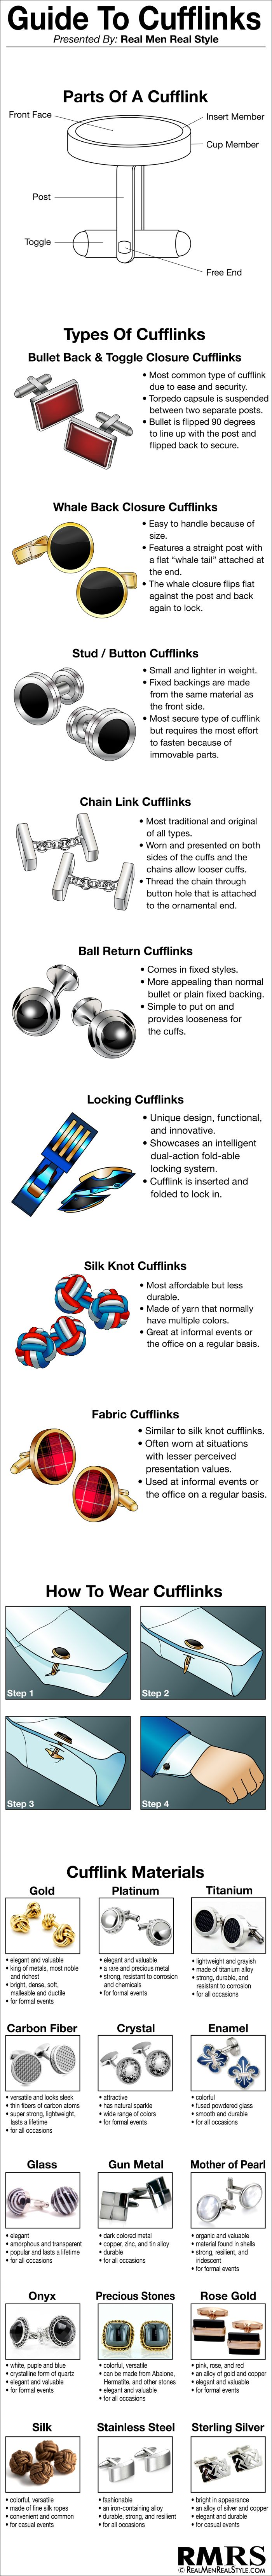 Ultimate Guide to Cufflinks Infographic | Man's Guide to Cuff-links | Cufflink Visual Chart (via @antoniocenteno)                                                                                                                                                     Más